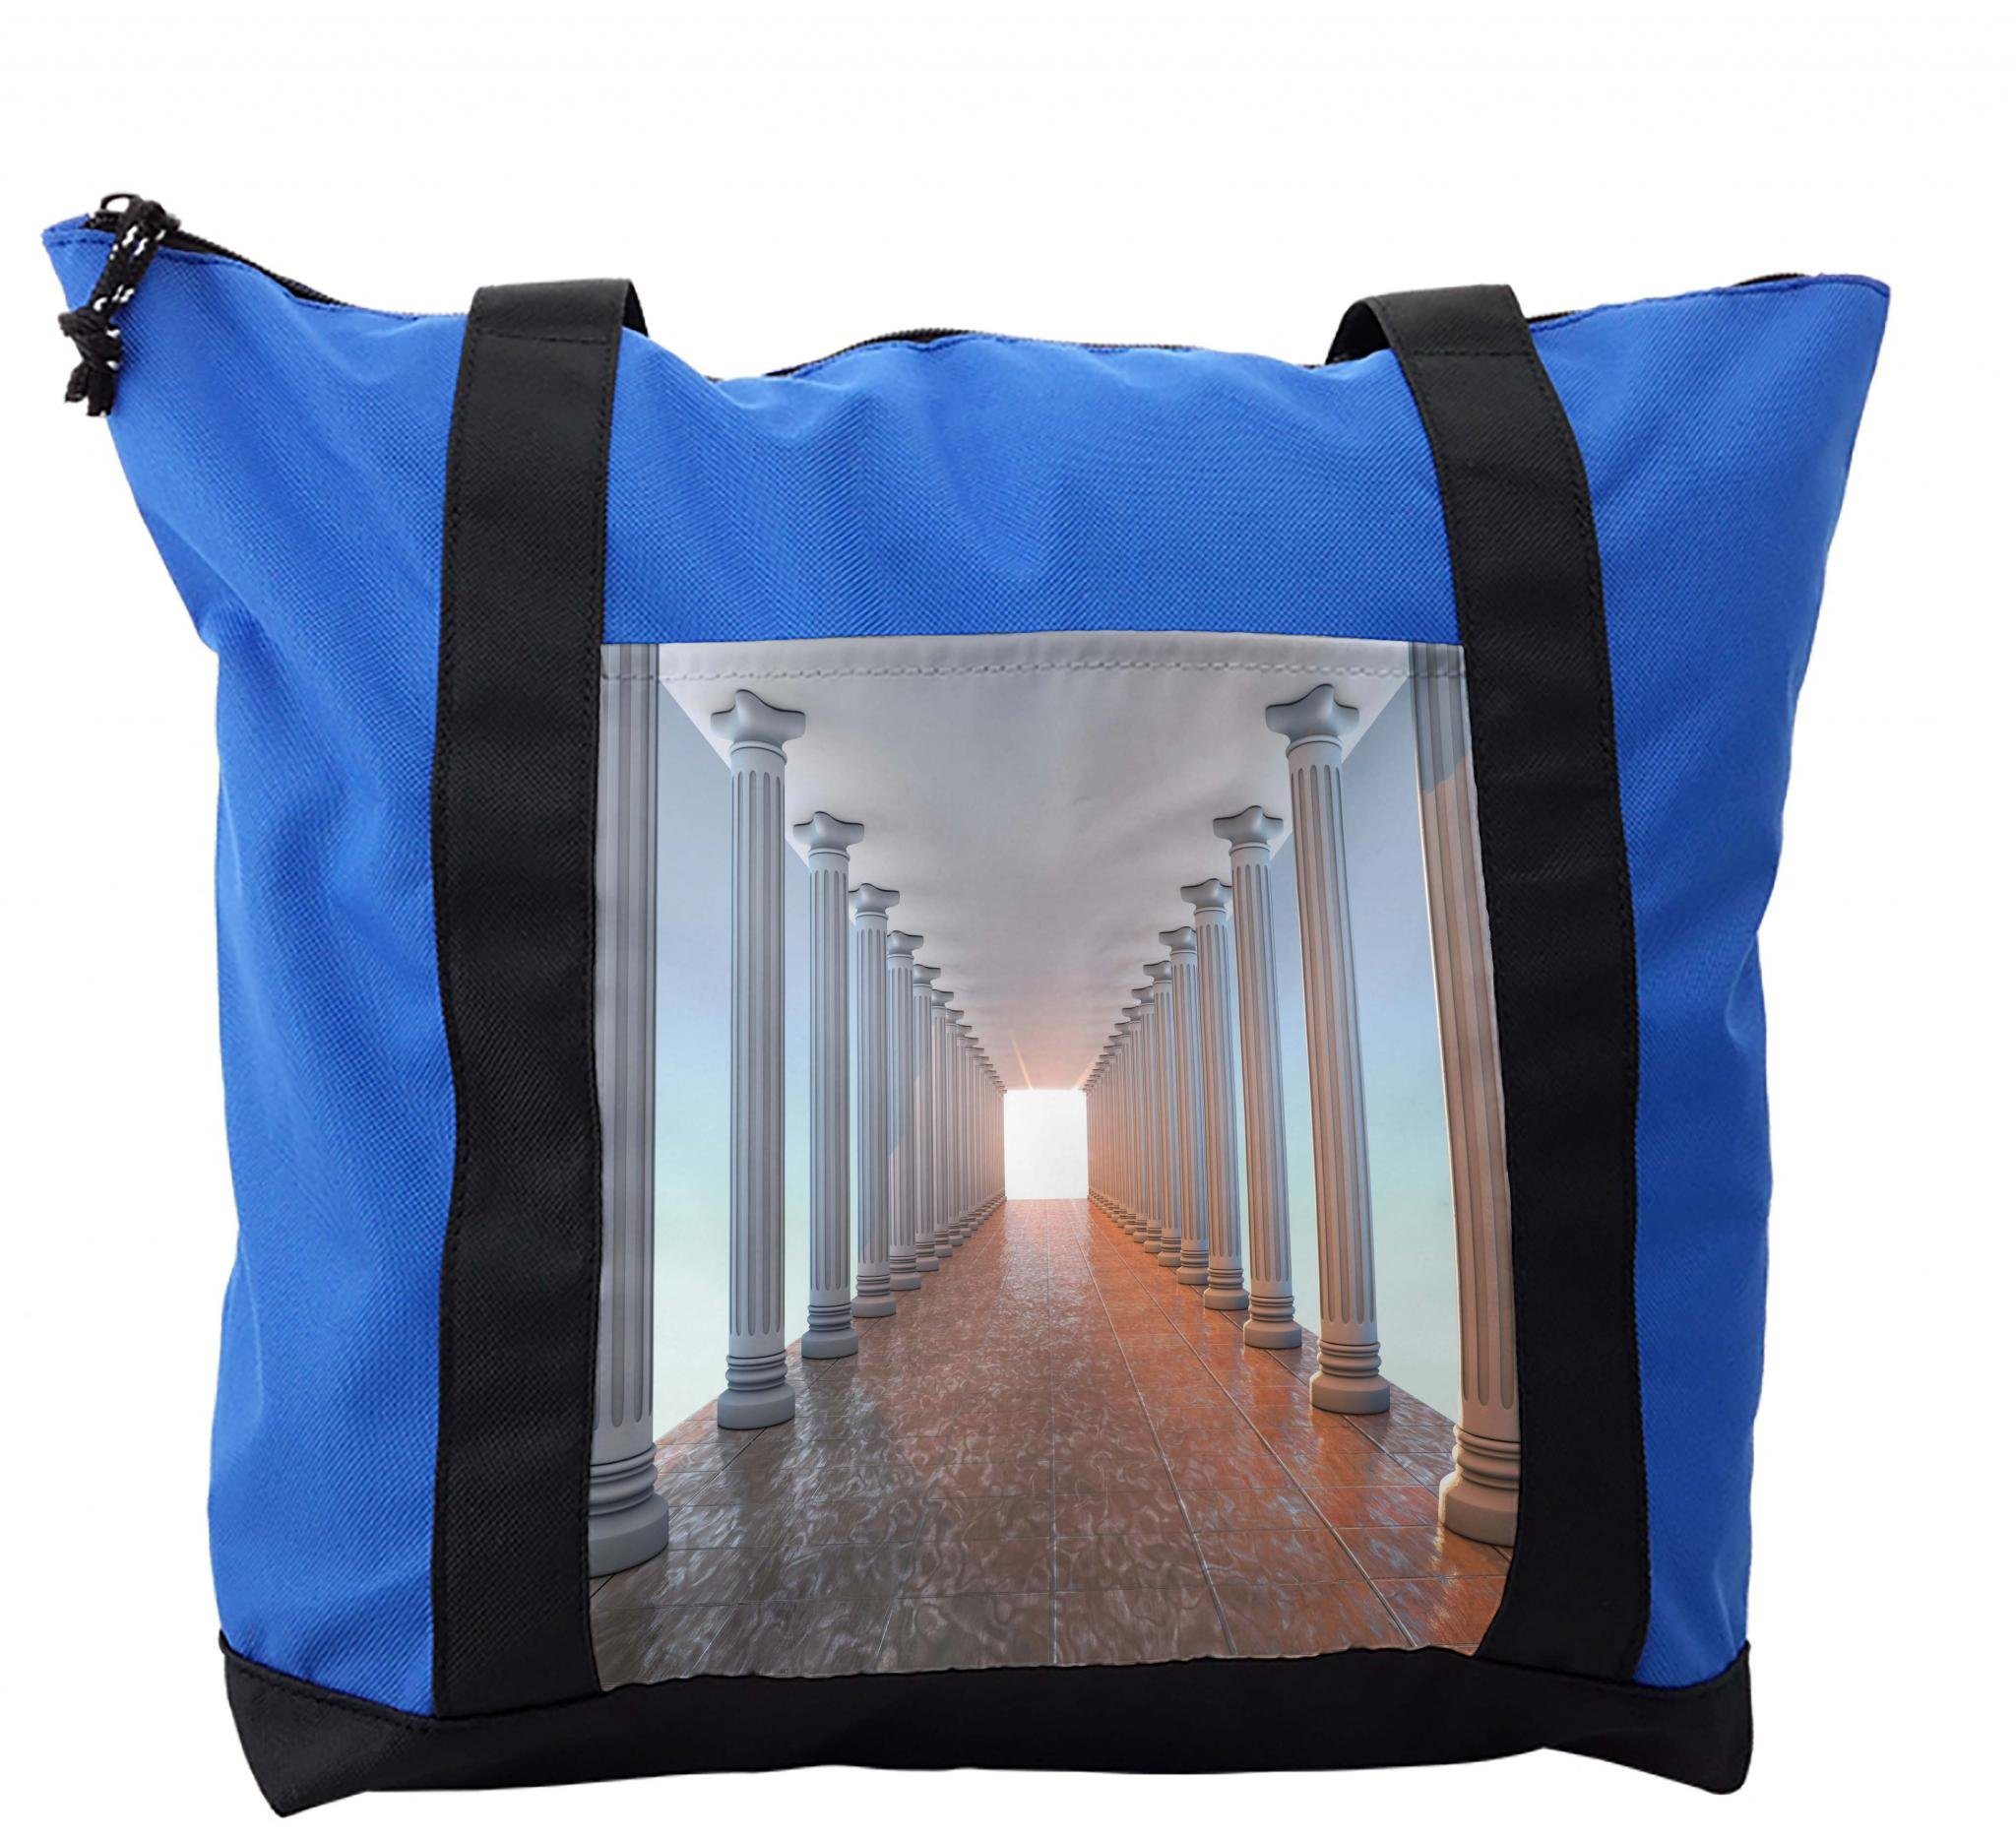 Lunarable Vintage Shoulder Bag, Marble Floor Old Library, Durable with Zipper